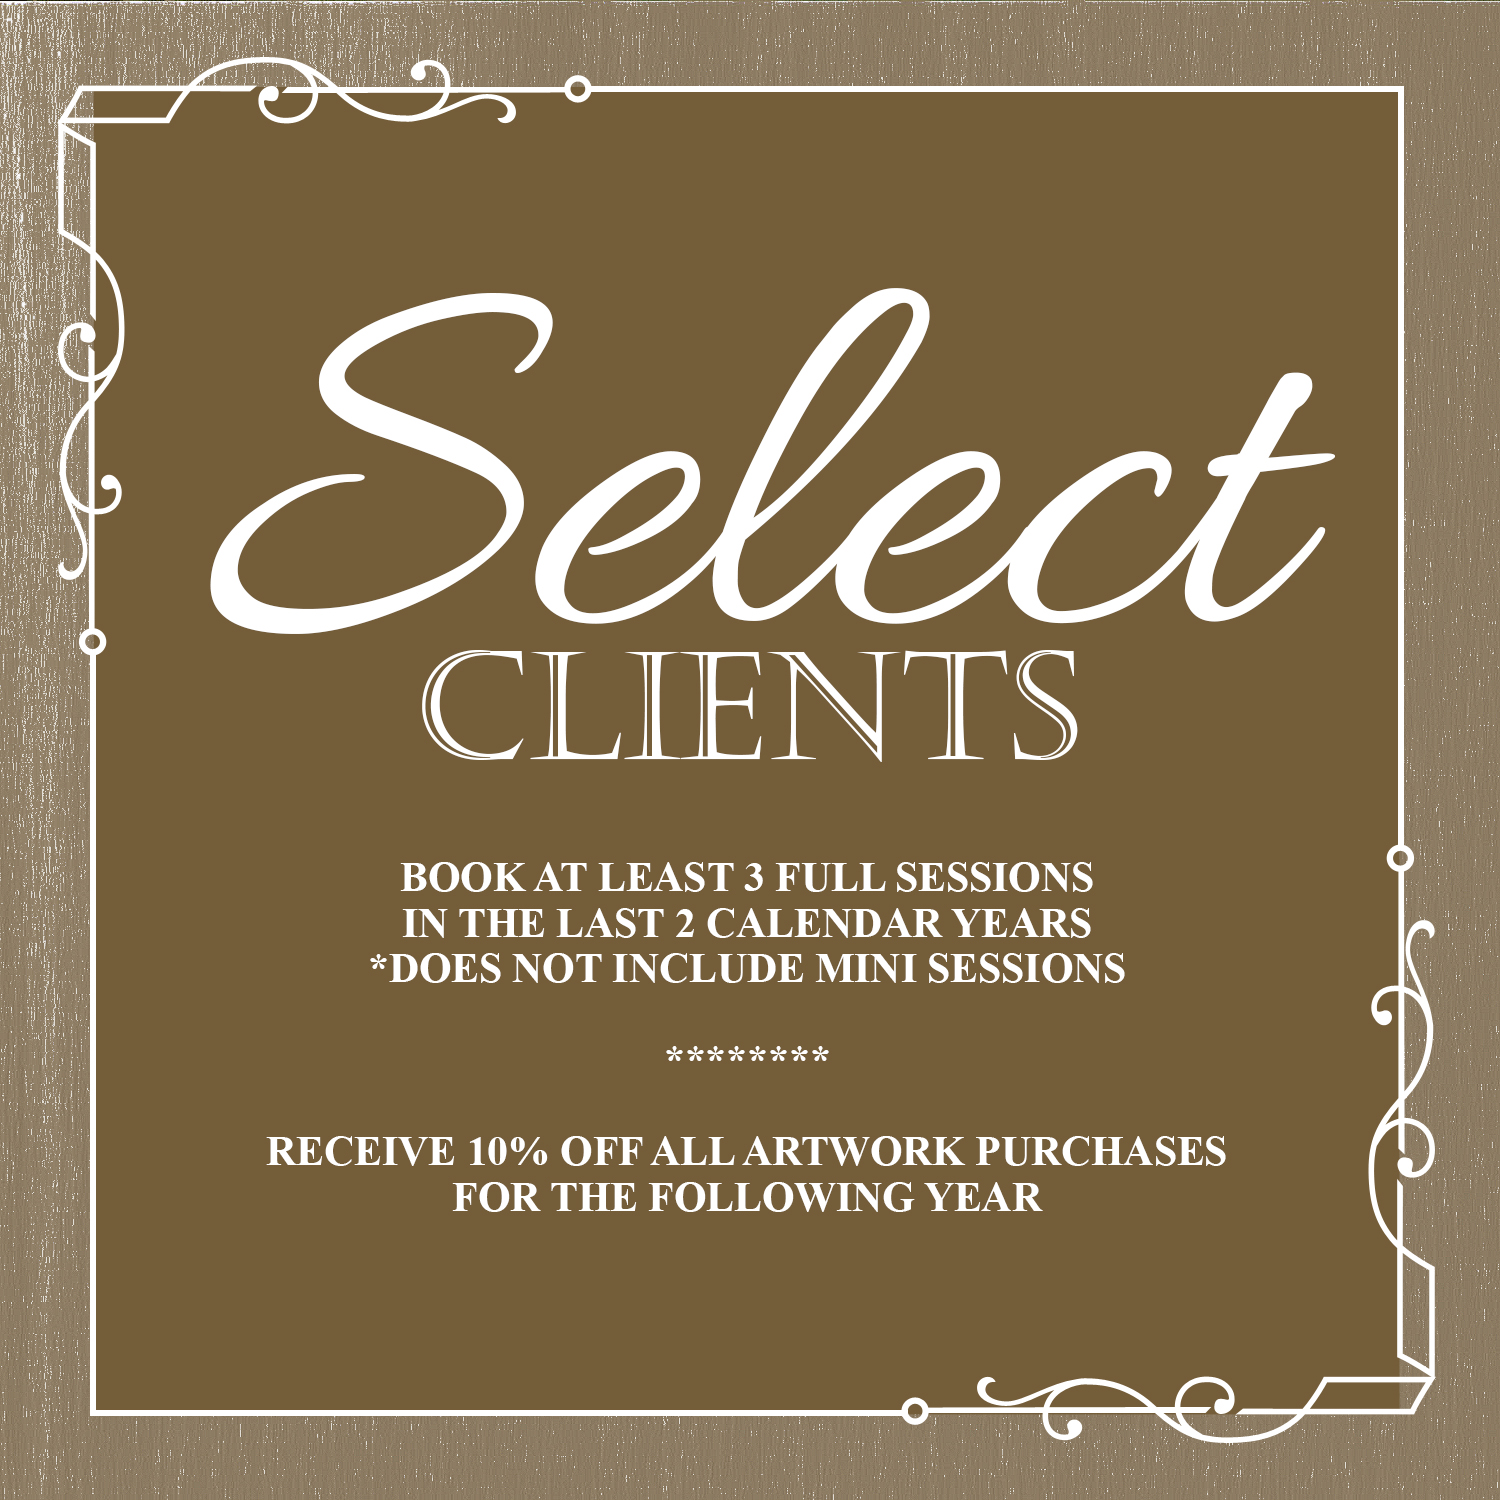 SELECT CLIENTS - Select Clients must have booked at least 3 full sessions in the previous 2 calendar years. Themed mini sessions (Holiday, Summer, Seasonal, etc.) do not quality for achieving Select Client status.Emails for qualifying clients will be sent out every January. Your 10% off counts towards any new sessions booked in the calendar year you received your email.